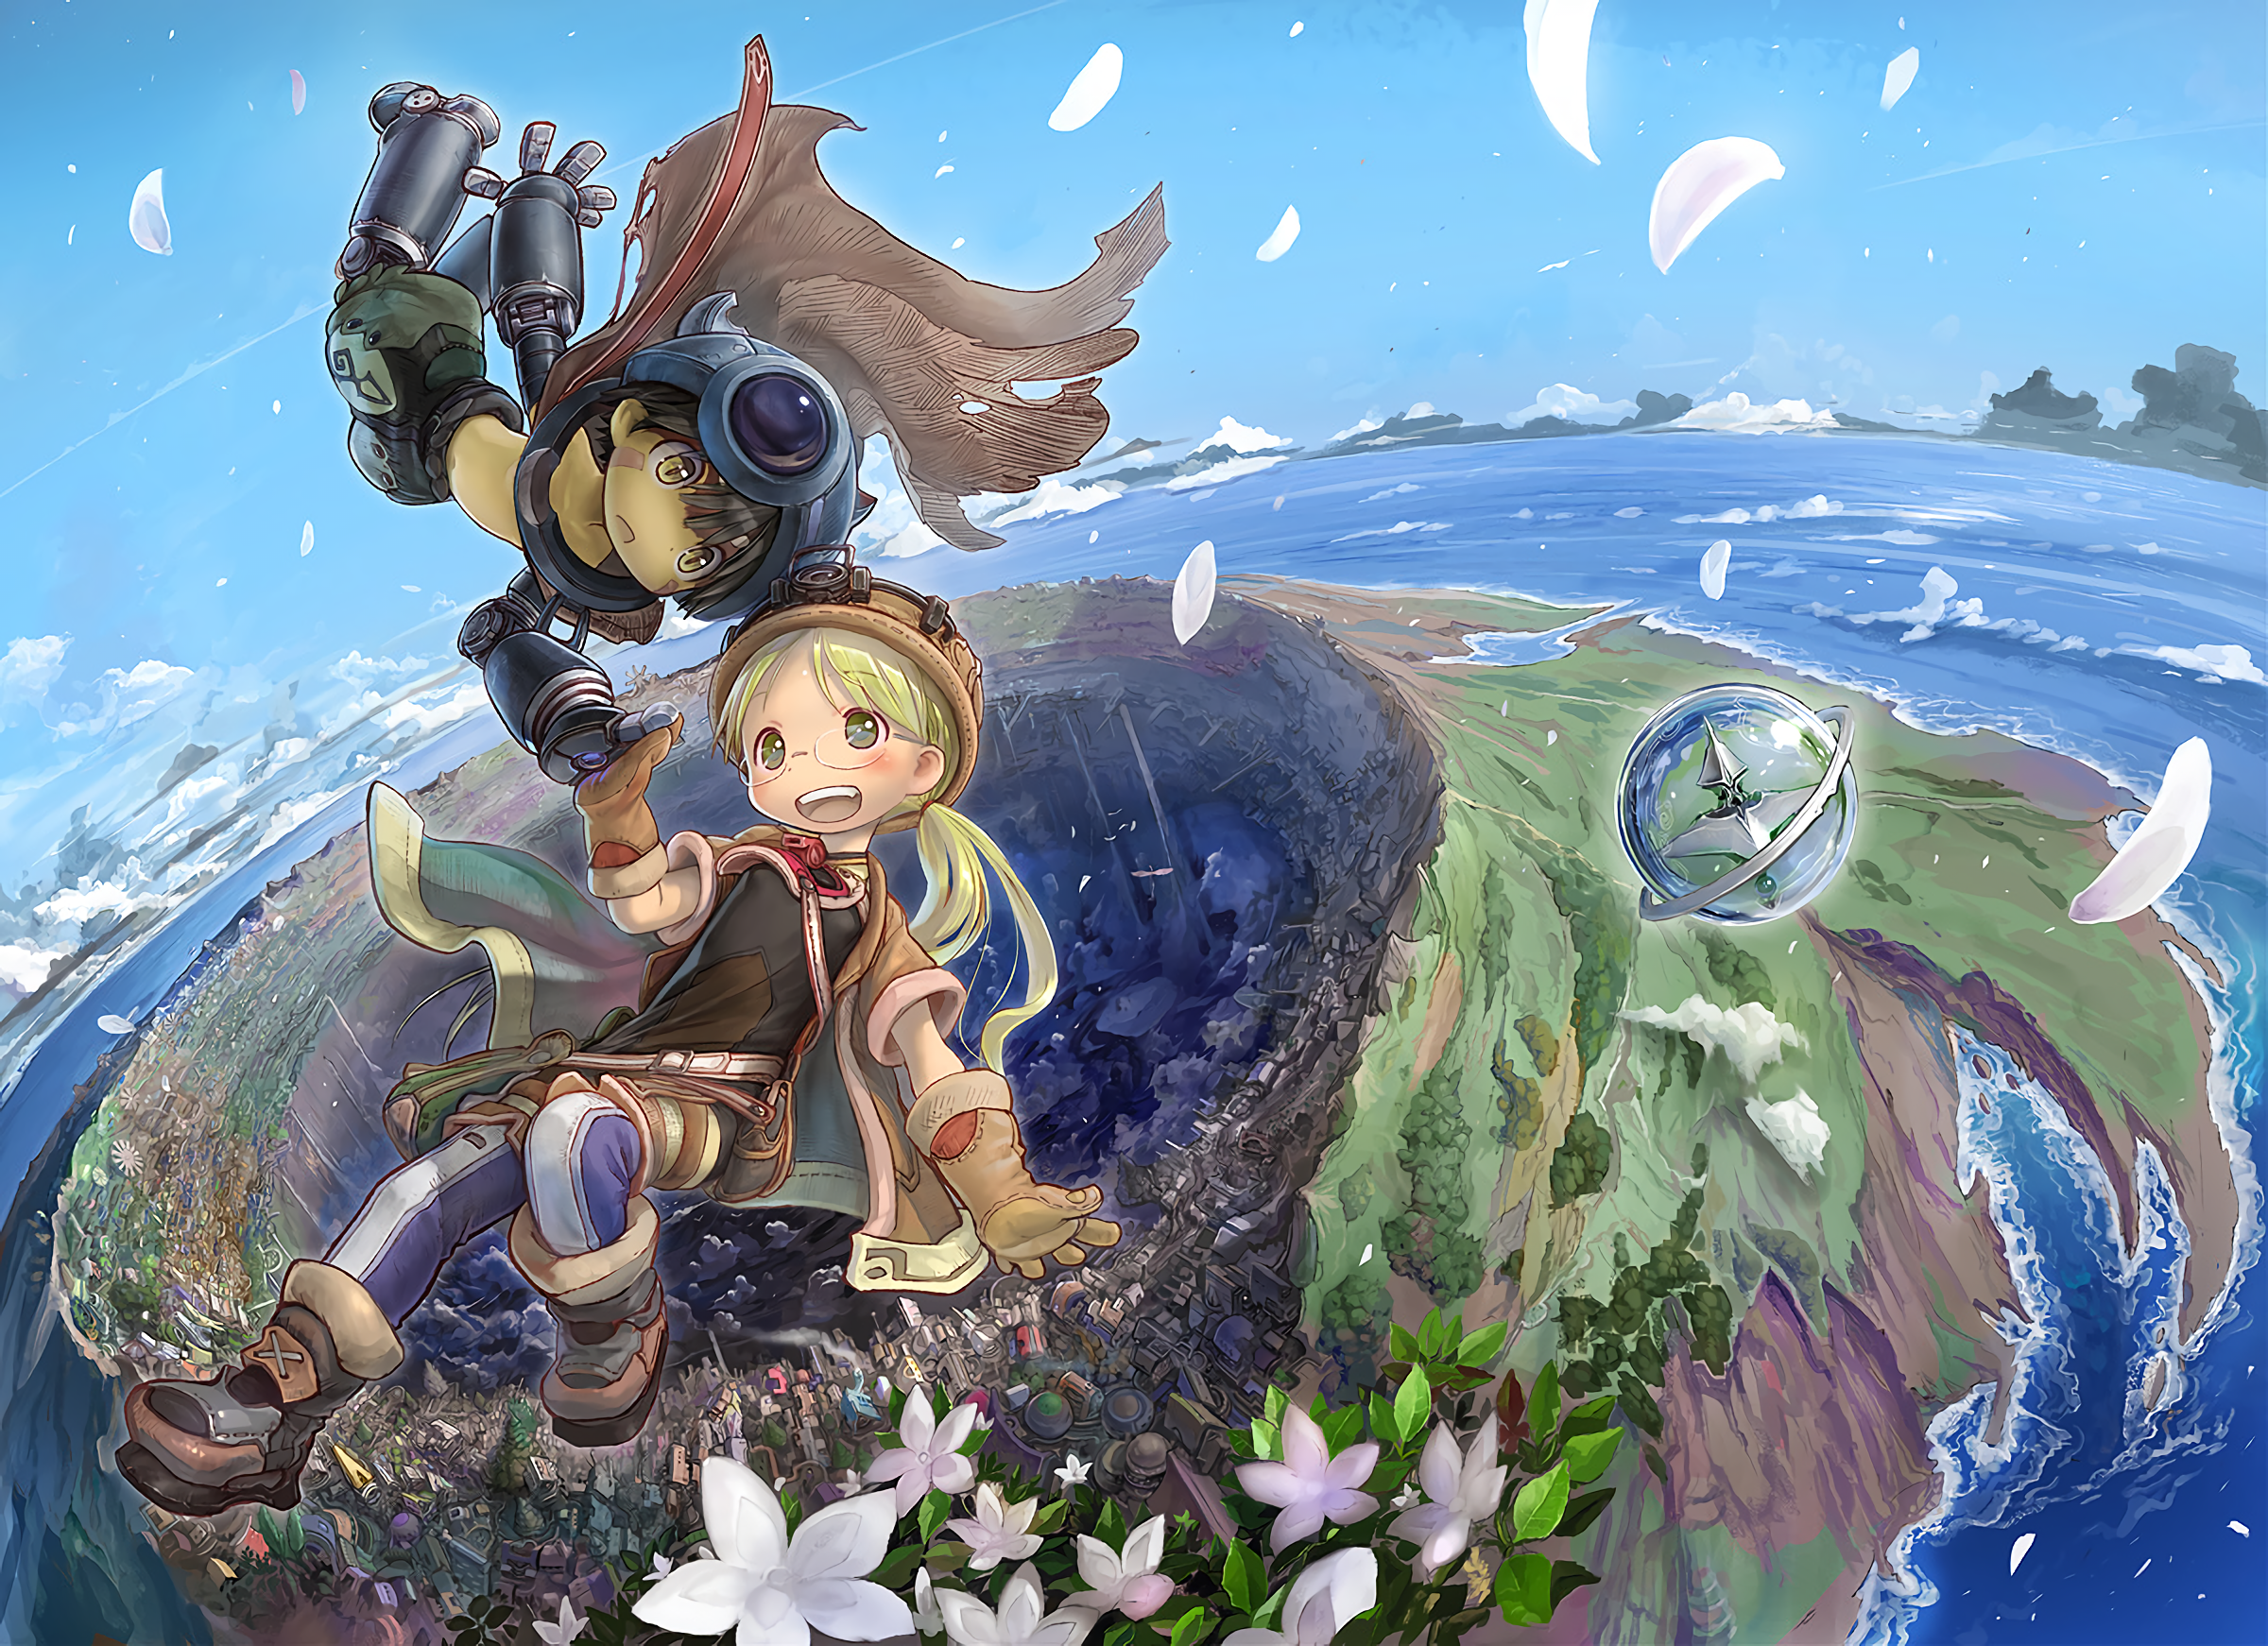 Made In Abyss HD Wallpaper  Background Image  2400x1742  ID:860636  Wallpaper Abyss